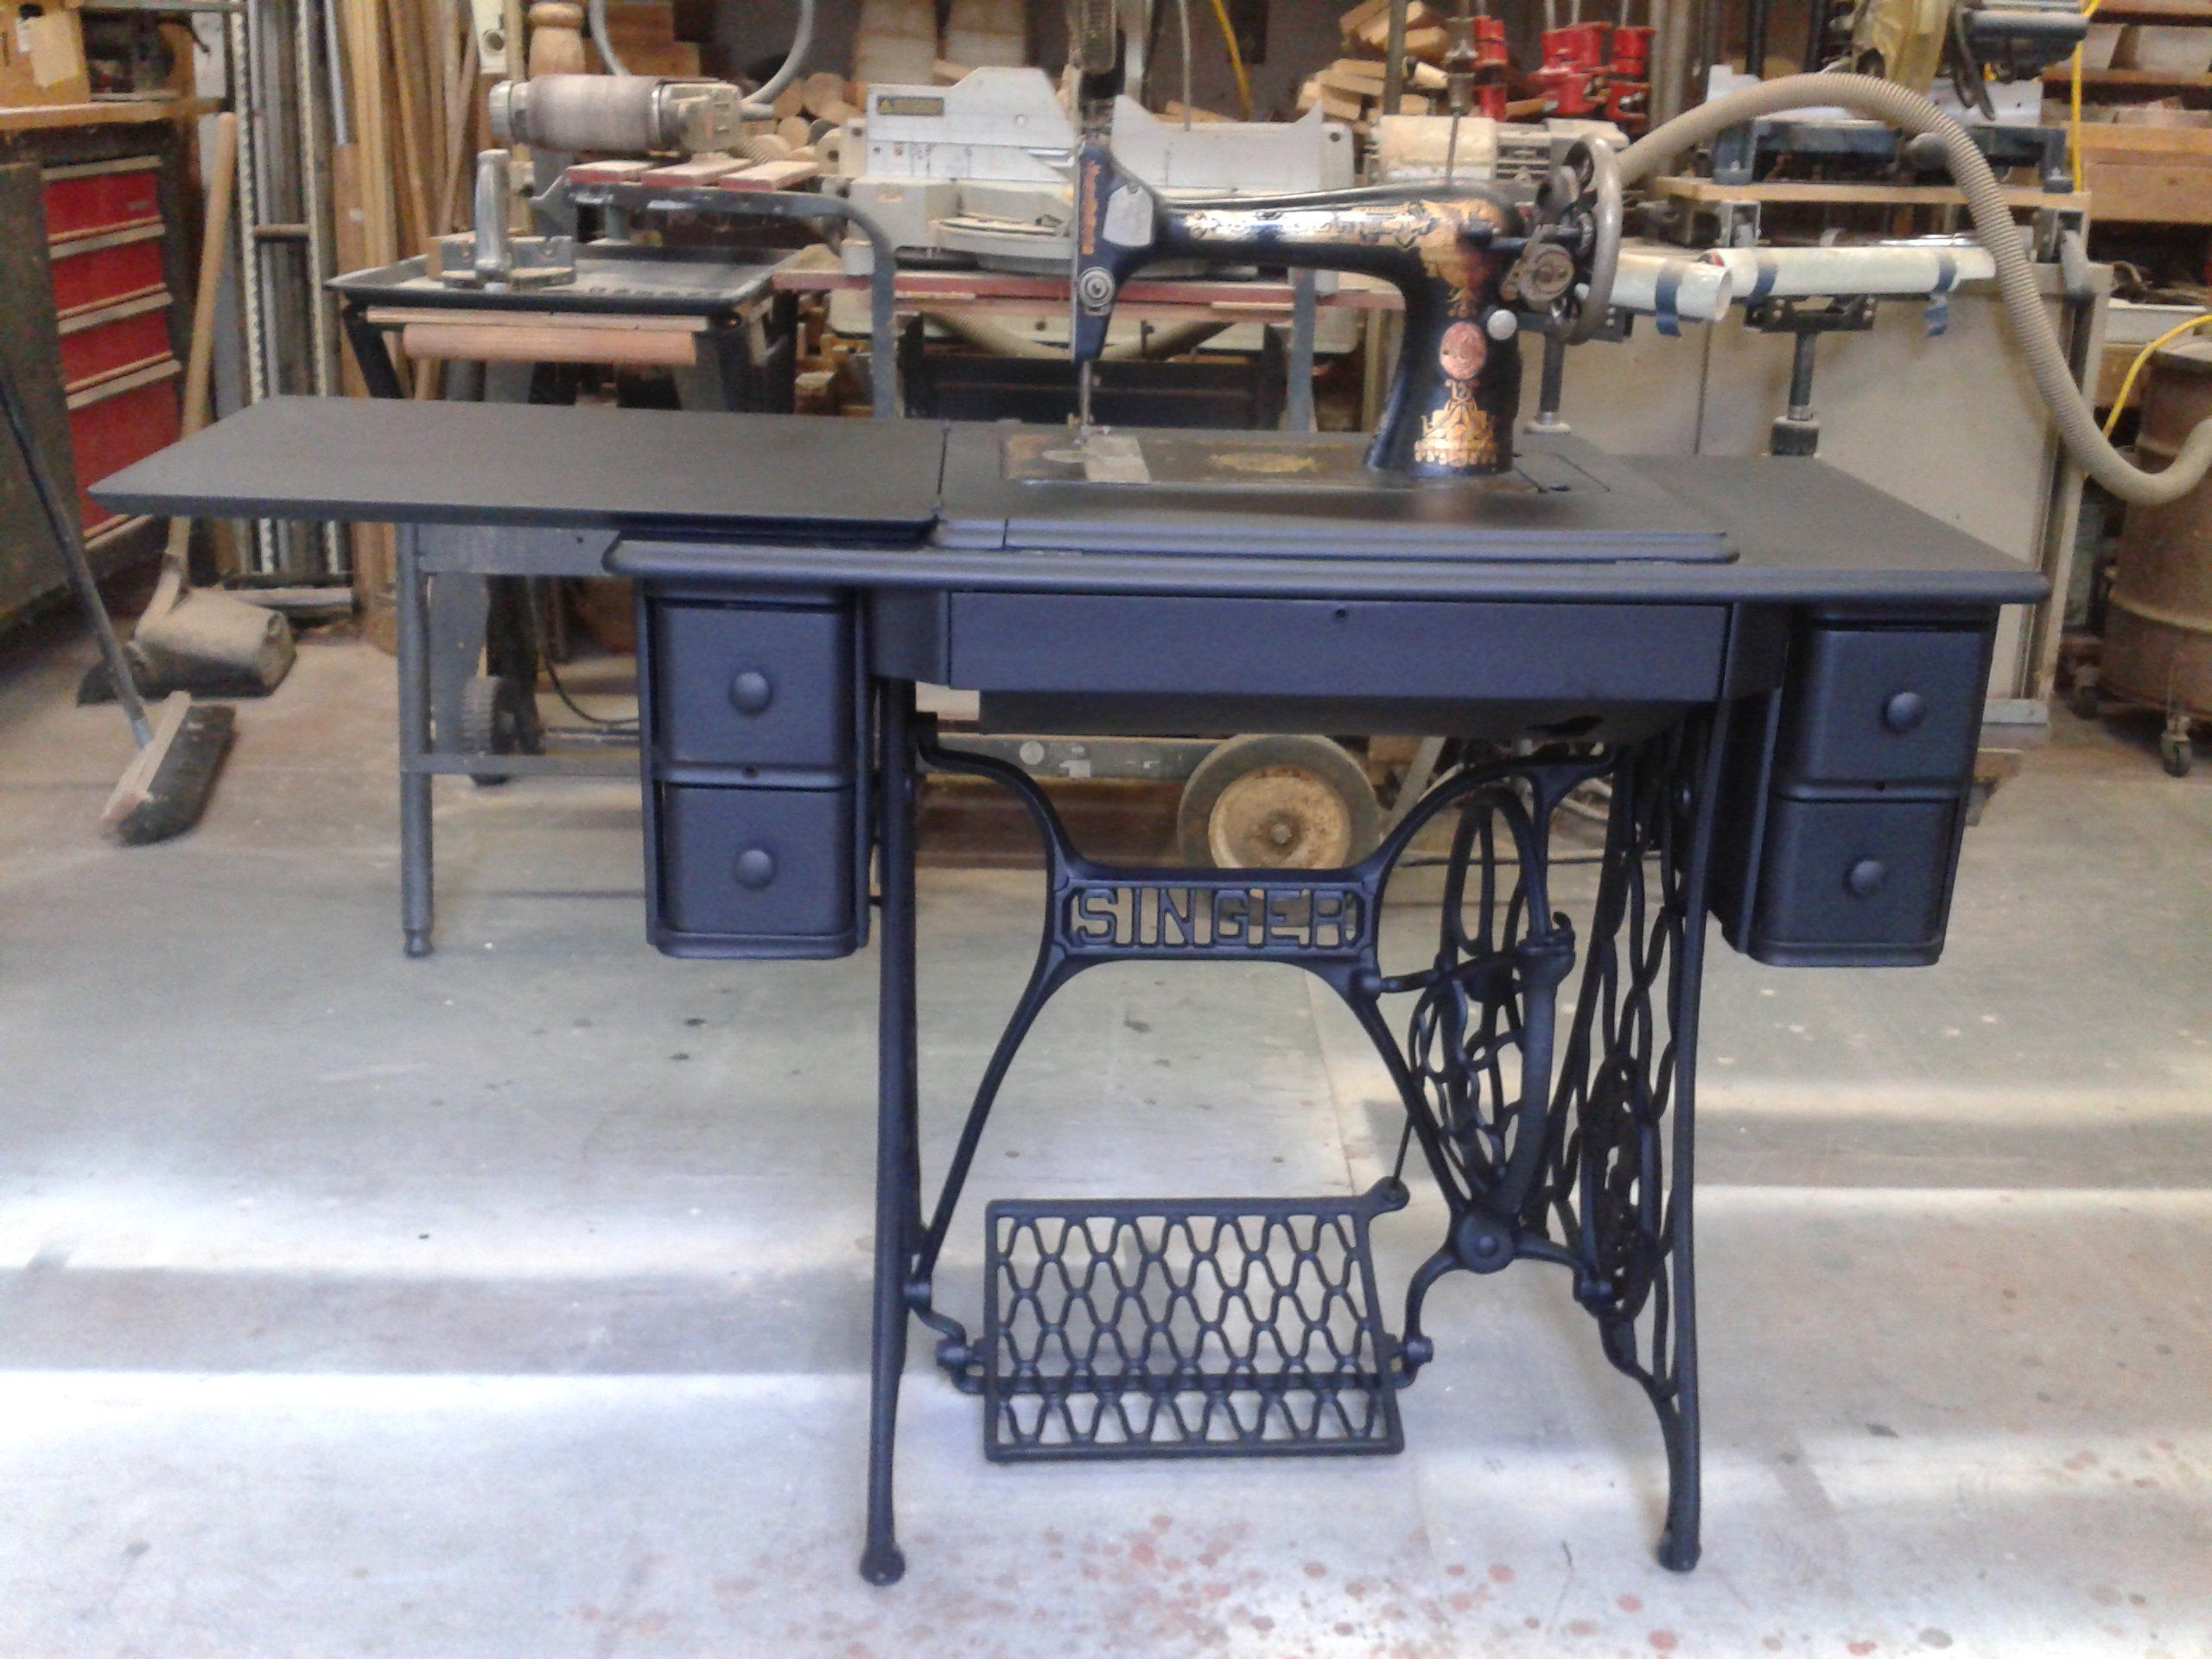 Refinished Old Singer Sewing Machine Re Propose Old Into